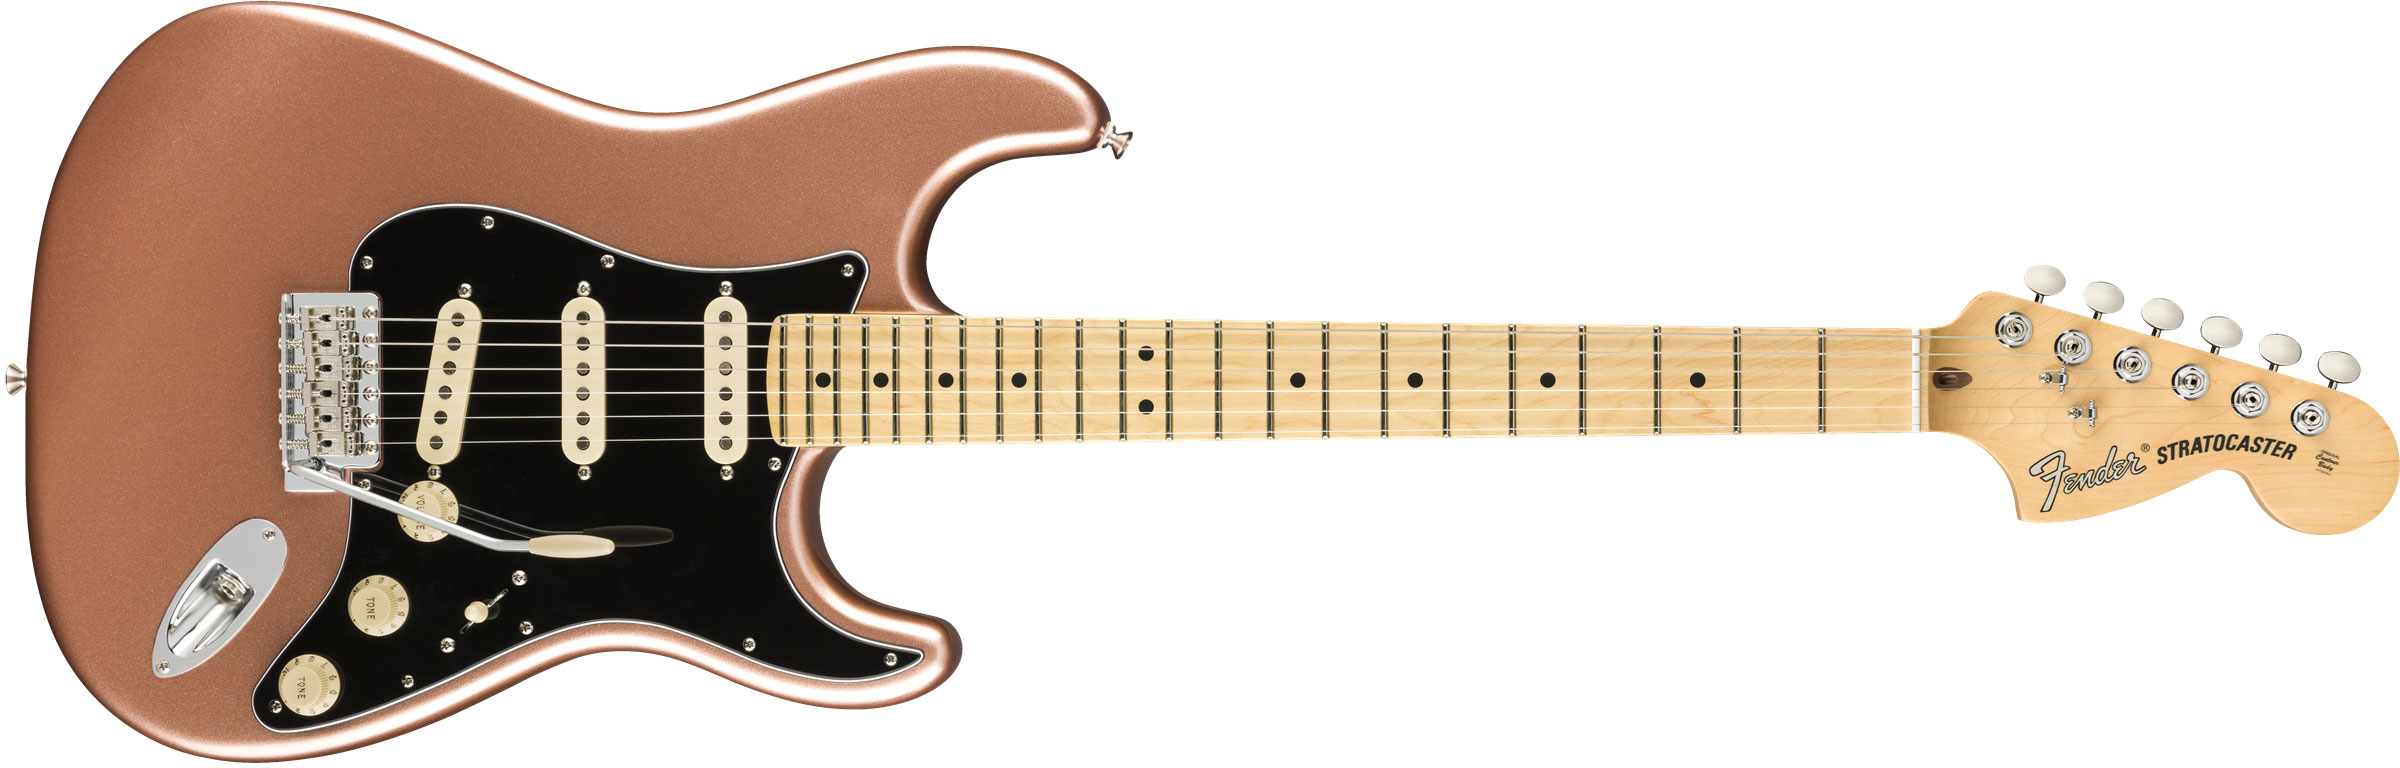 GUITARRA FENDER AM PERFORMER STRATOCASTER MN 011-4912-384 PENNY